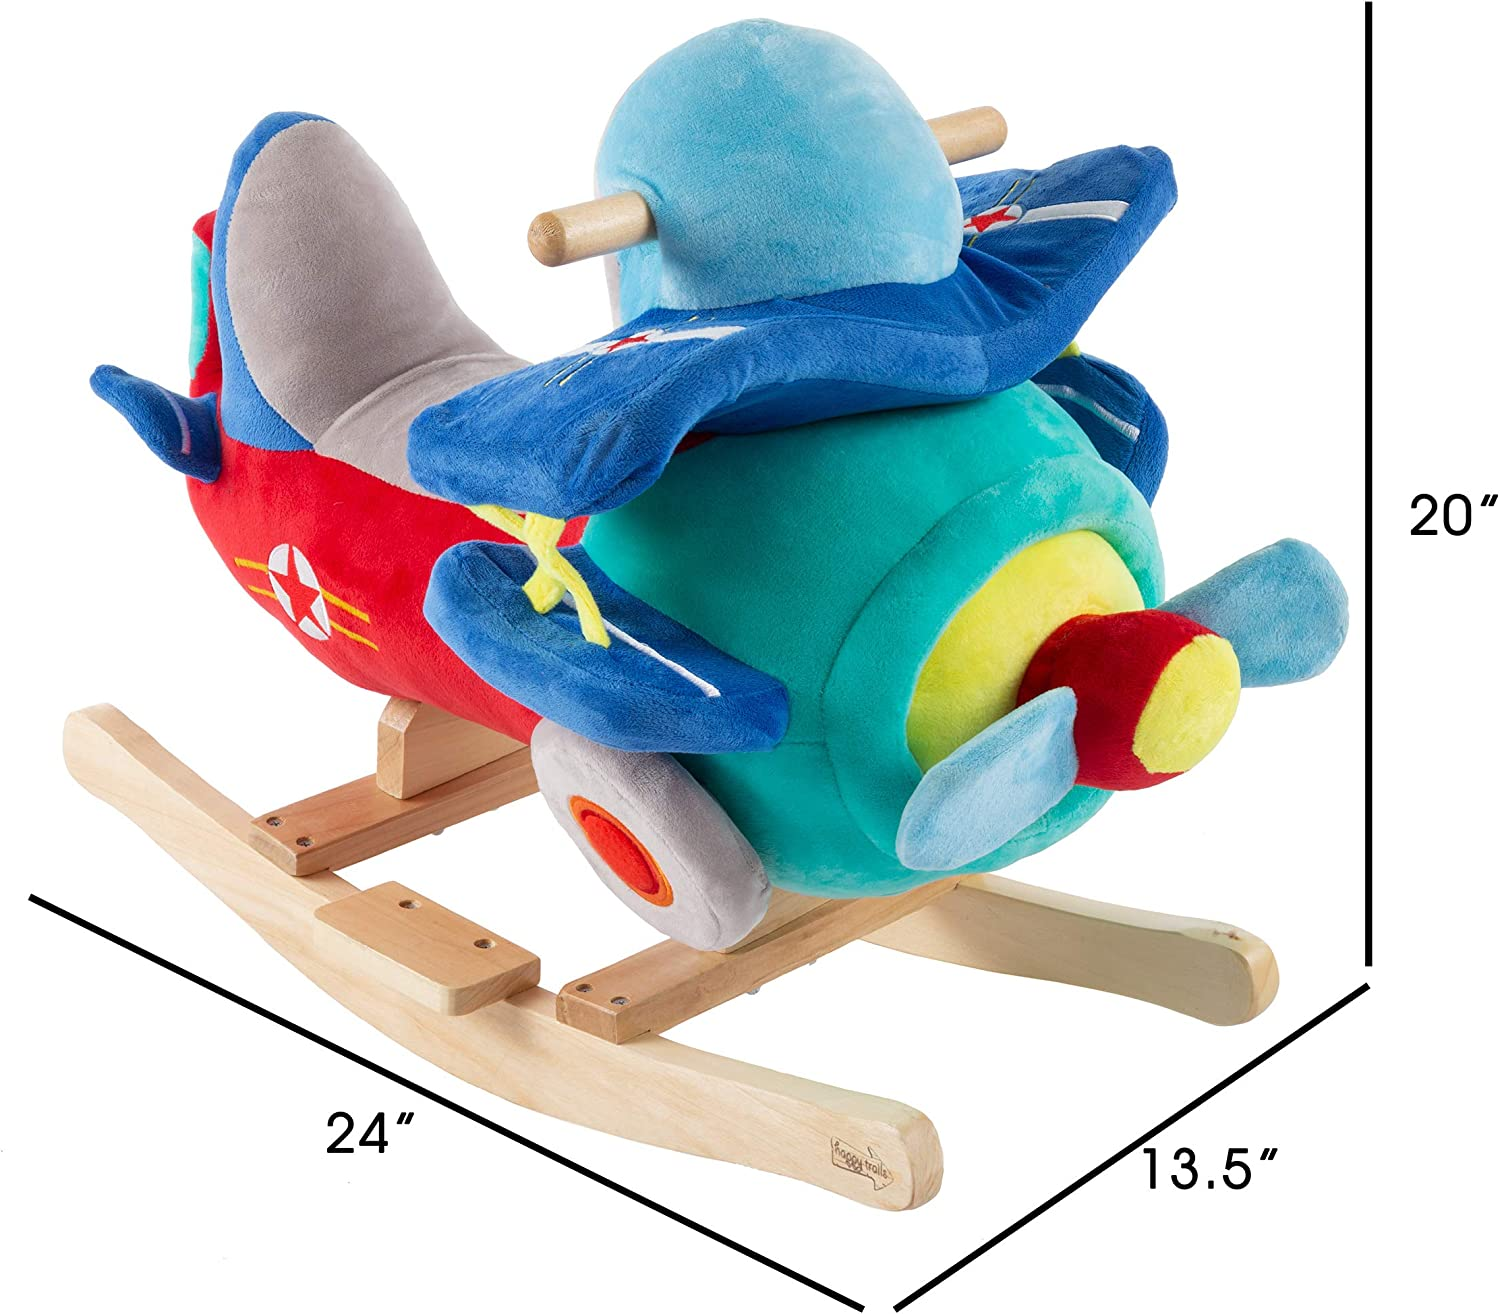 Happy Trails 80-690PLN Rocking Plane Toy- Kids Plush Stuffed Ride On Wooden Rockers with Sounds Handles-Make Believe Play- Fun for Boys, Girls, Toddlers, Brown a